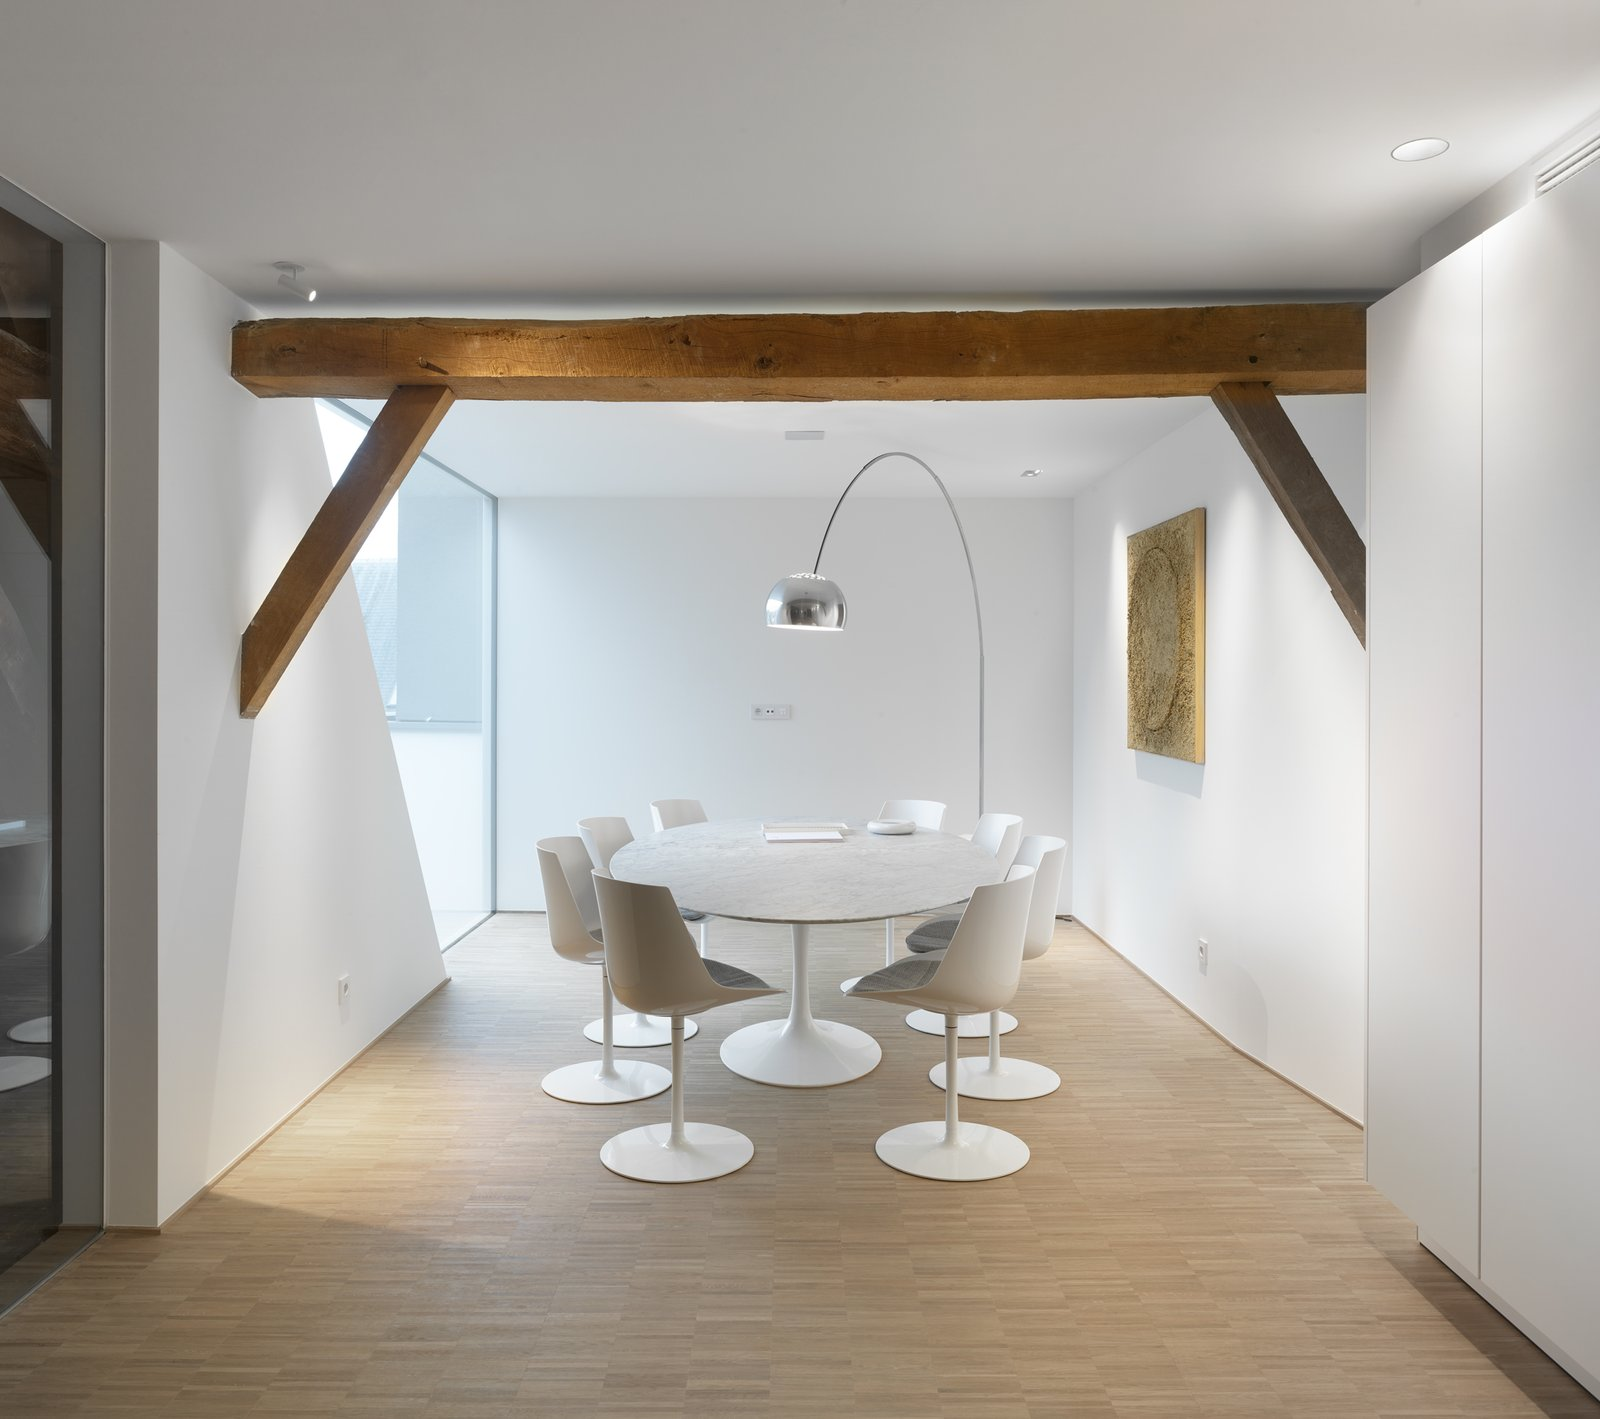 Office, Medium Hardwood Floor, Chair, and Desk  Photo 7 of 8 in This Chapel-Turned-Office in Belgium Is Unbelievably Cool